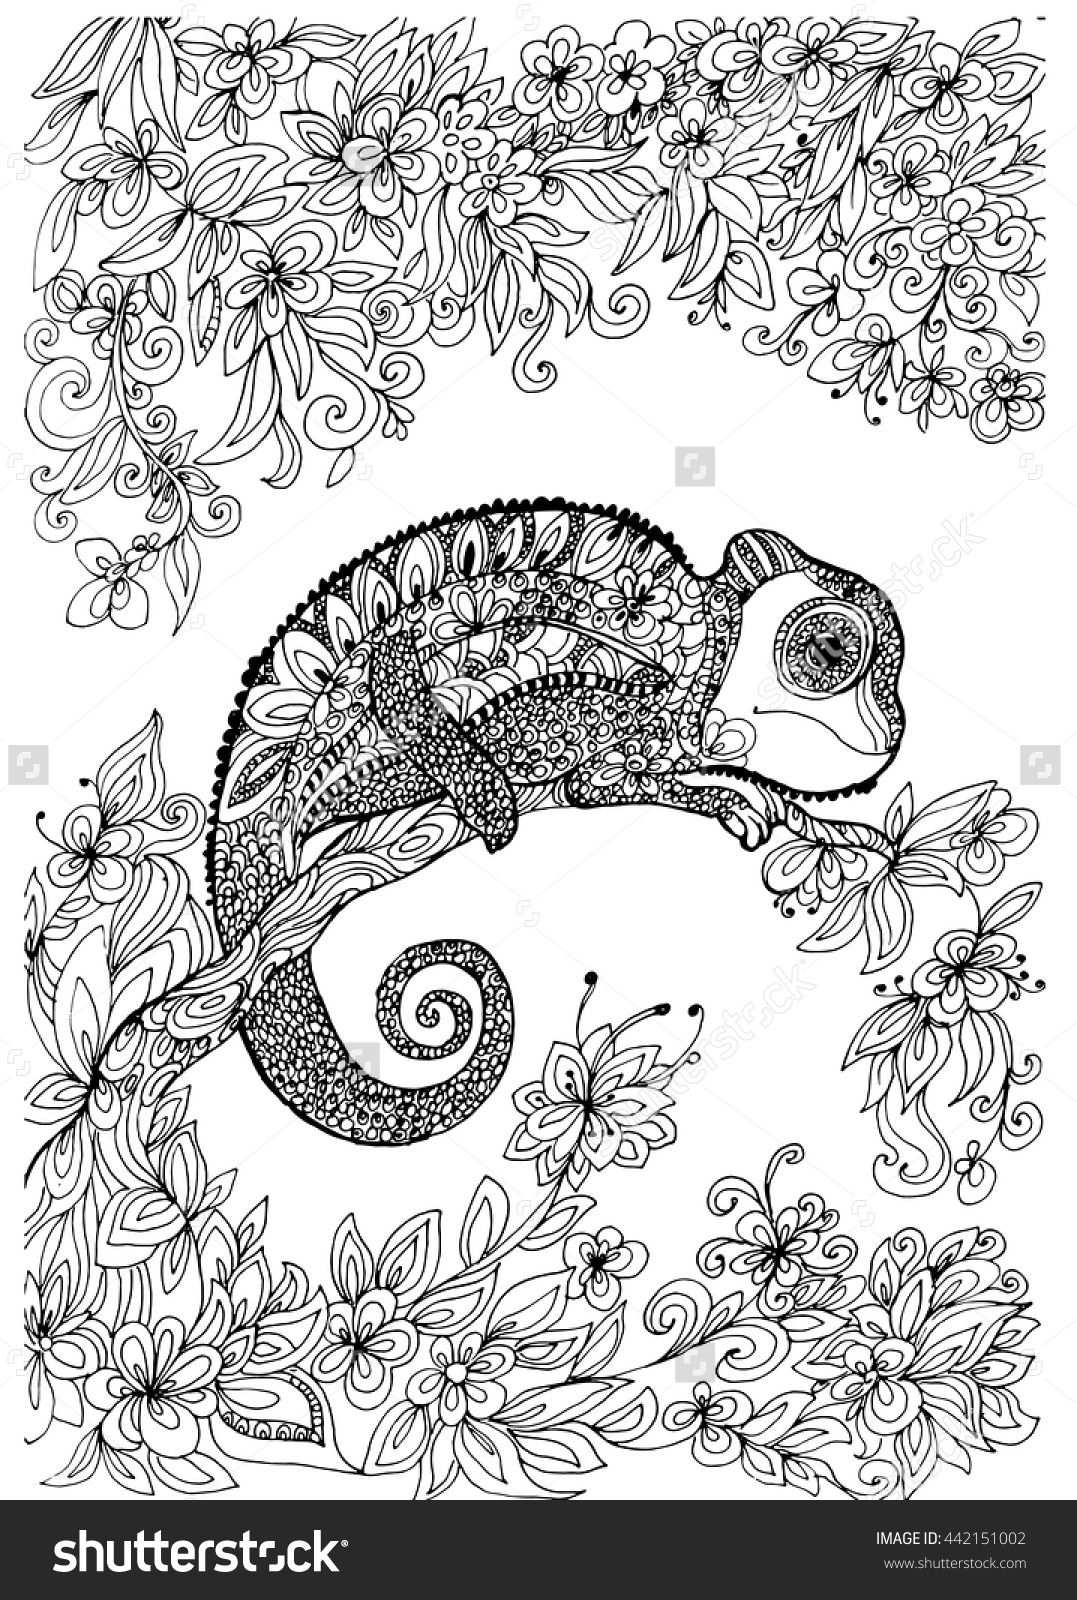 Chameleon On The Tree Coloring